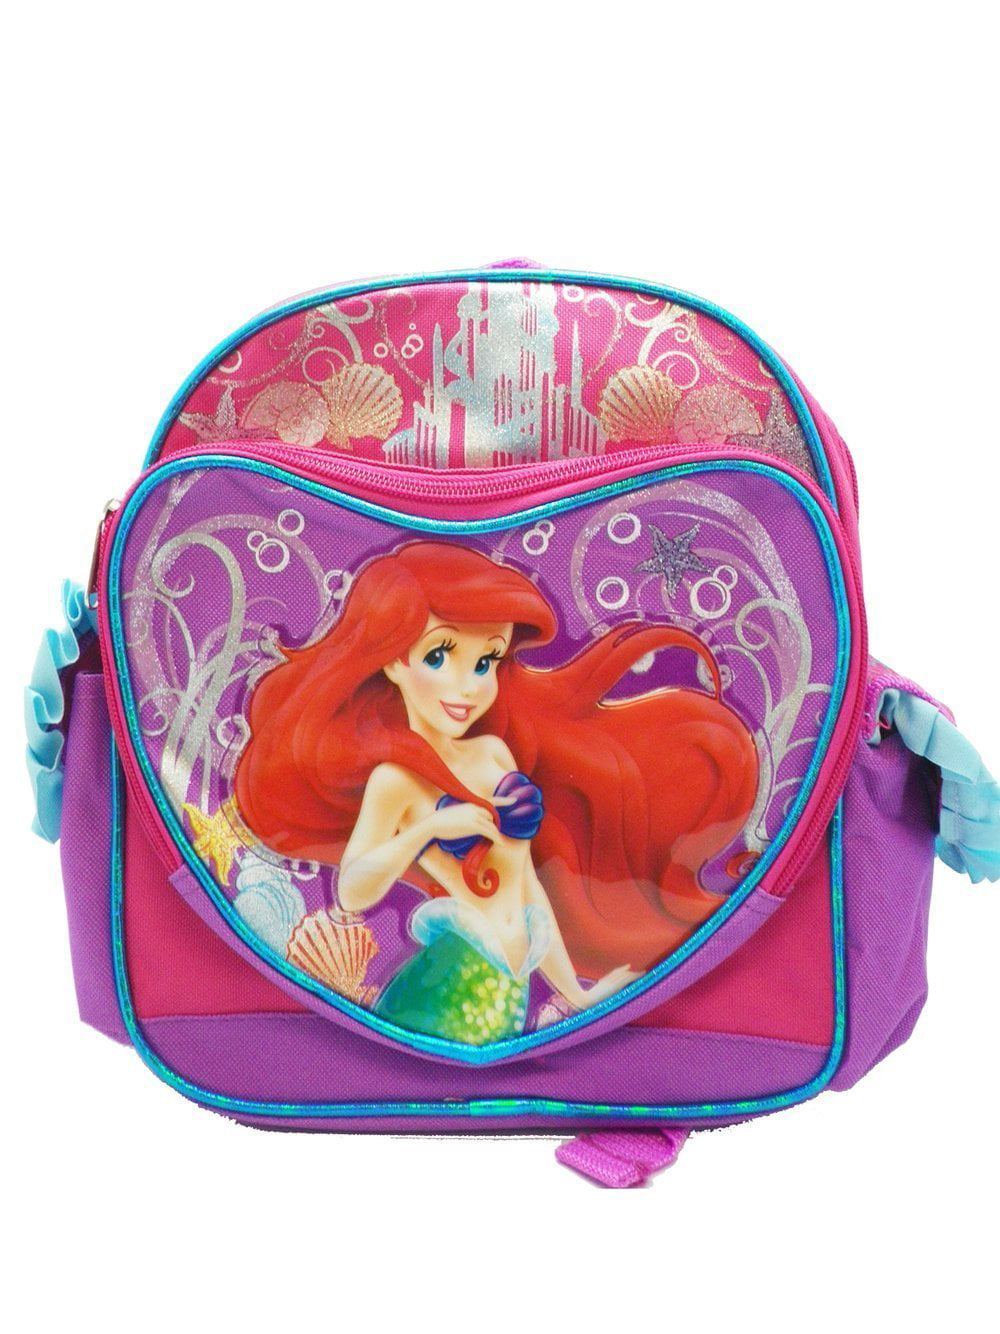 Ariel Backpack Pink and Purple Little Mermaid by Disney